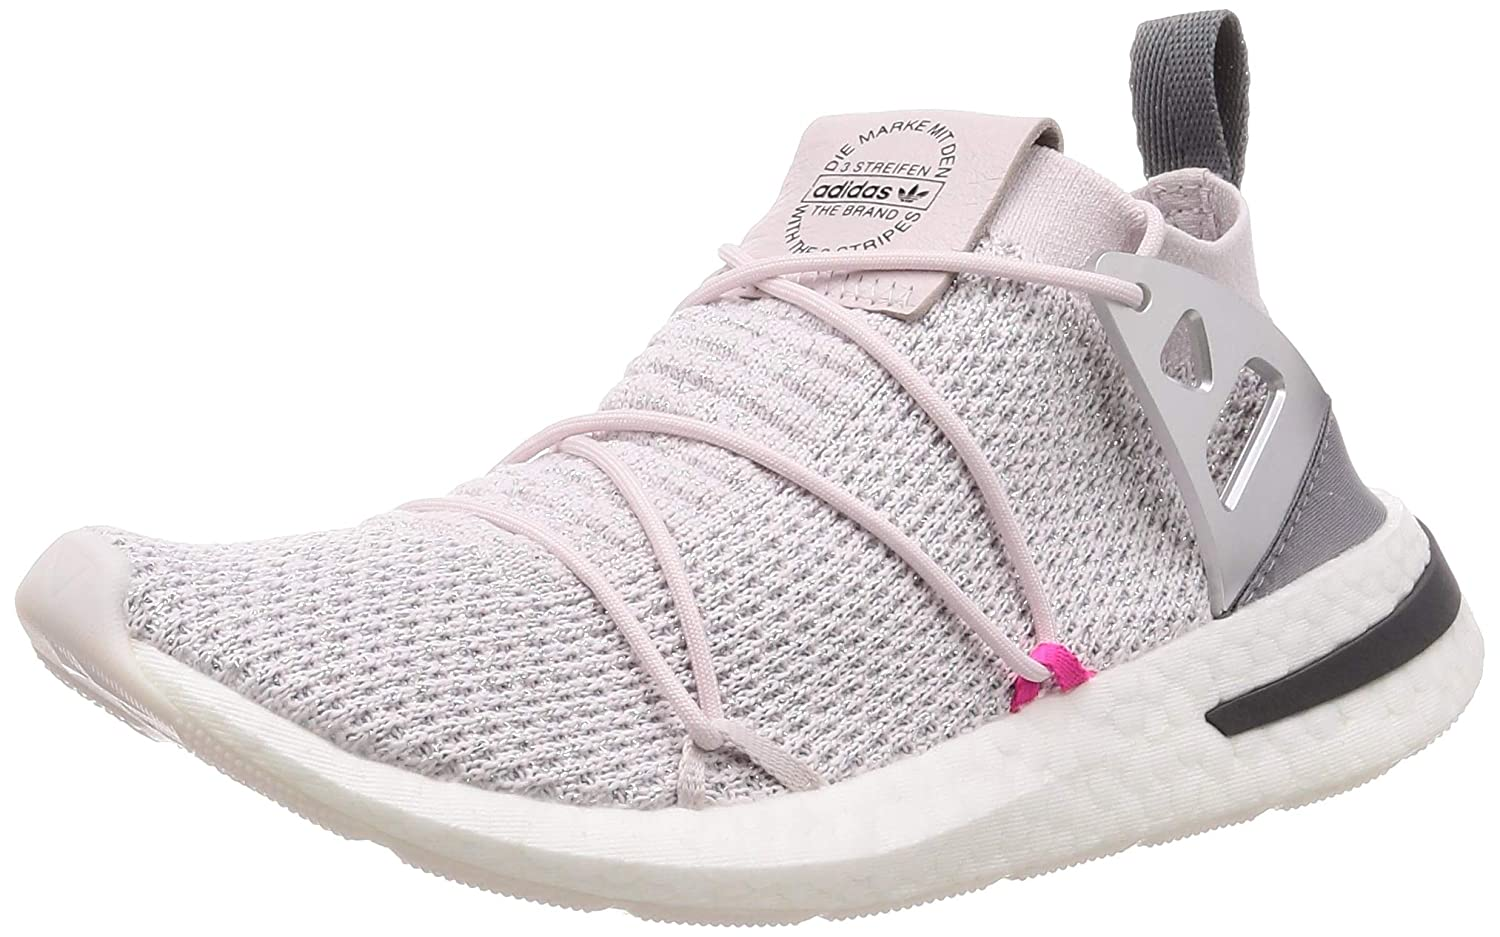 MultiCouleure (Tinorc Tinorc Gritre 000) adidas Arkyn PK W, Chaussures de Fitness Femme 39 1 3 EU